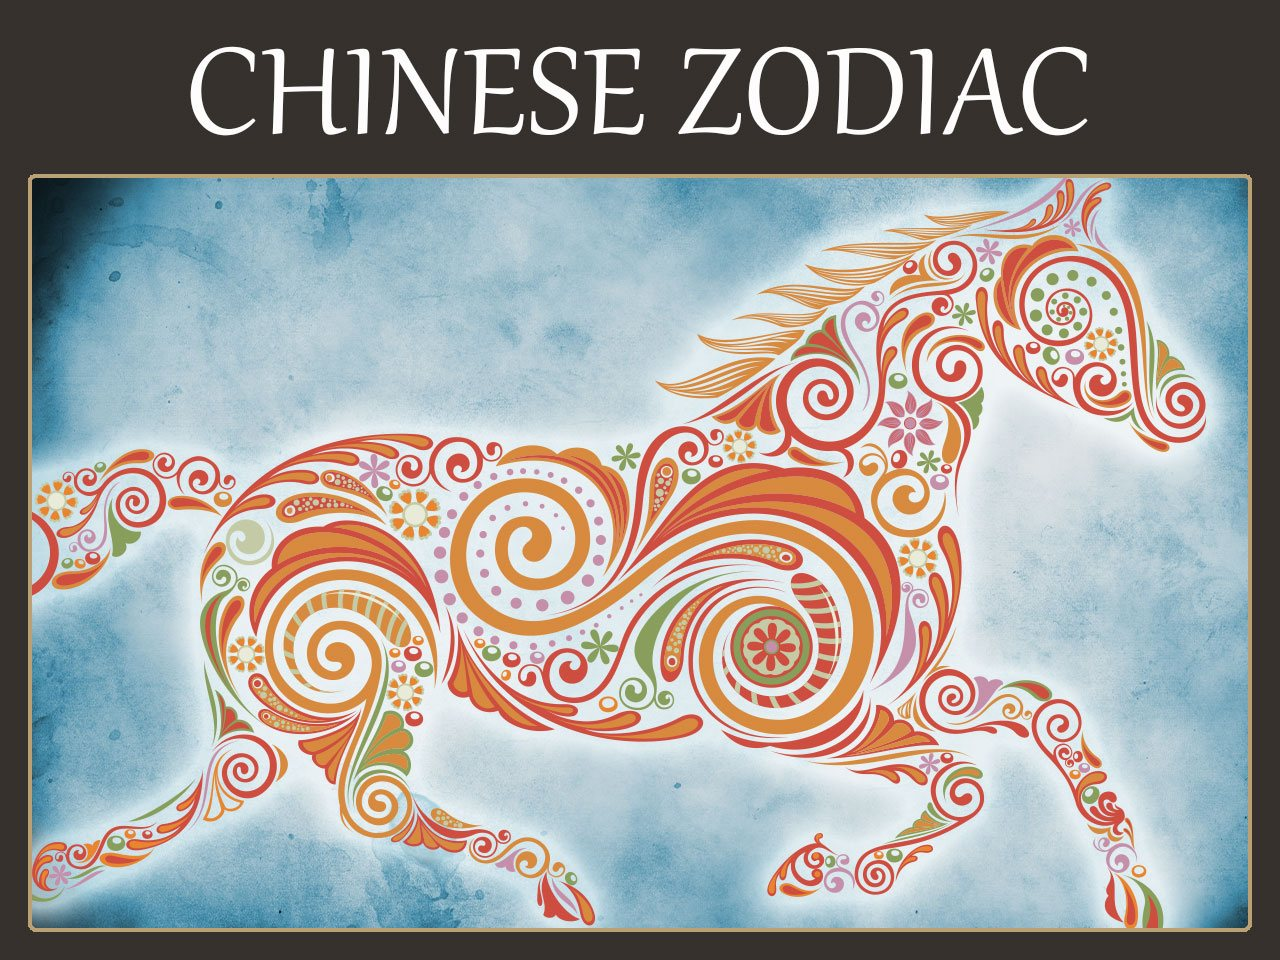 Chinese Zodiac Signs & Meanings | Personality, Traits, Characteristics